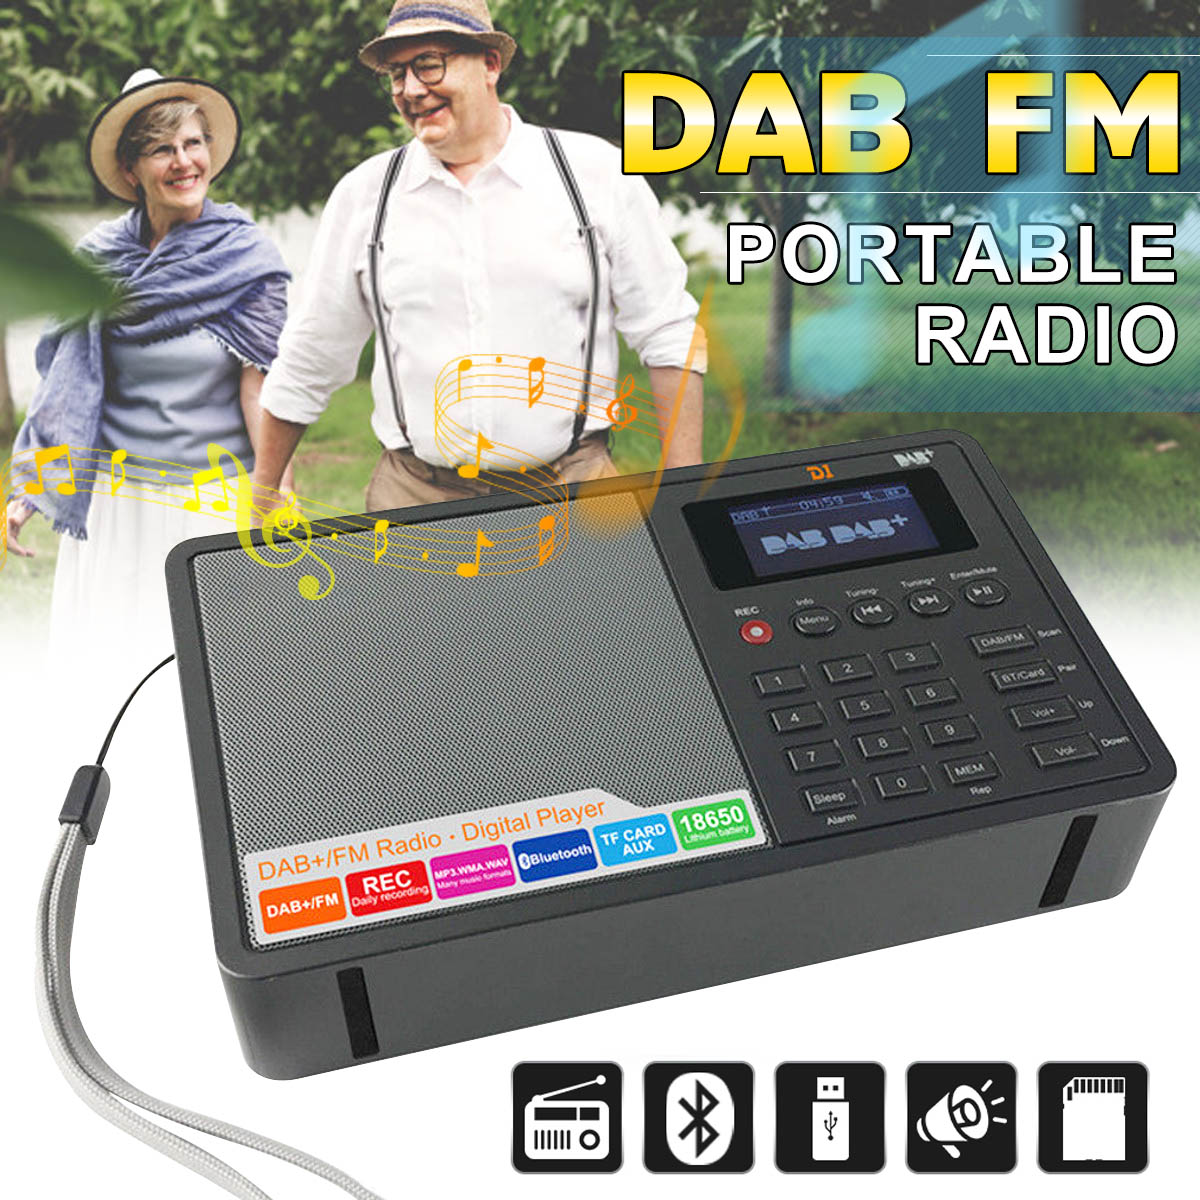 Portable DAB/DAB+ FM Bluetooth4.0 1.8 Inch TFT Screen LCD Digital Radio Music Speaker MP3 USB Alarm Clock Digital Support RDS gtmedia dr 103b dab bluetooth receiver portable digital dab fm stereo radio receptor with 2 4 inch tft color display alarm clock